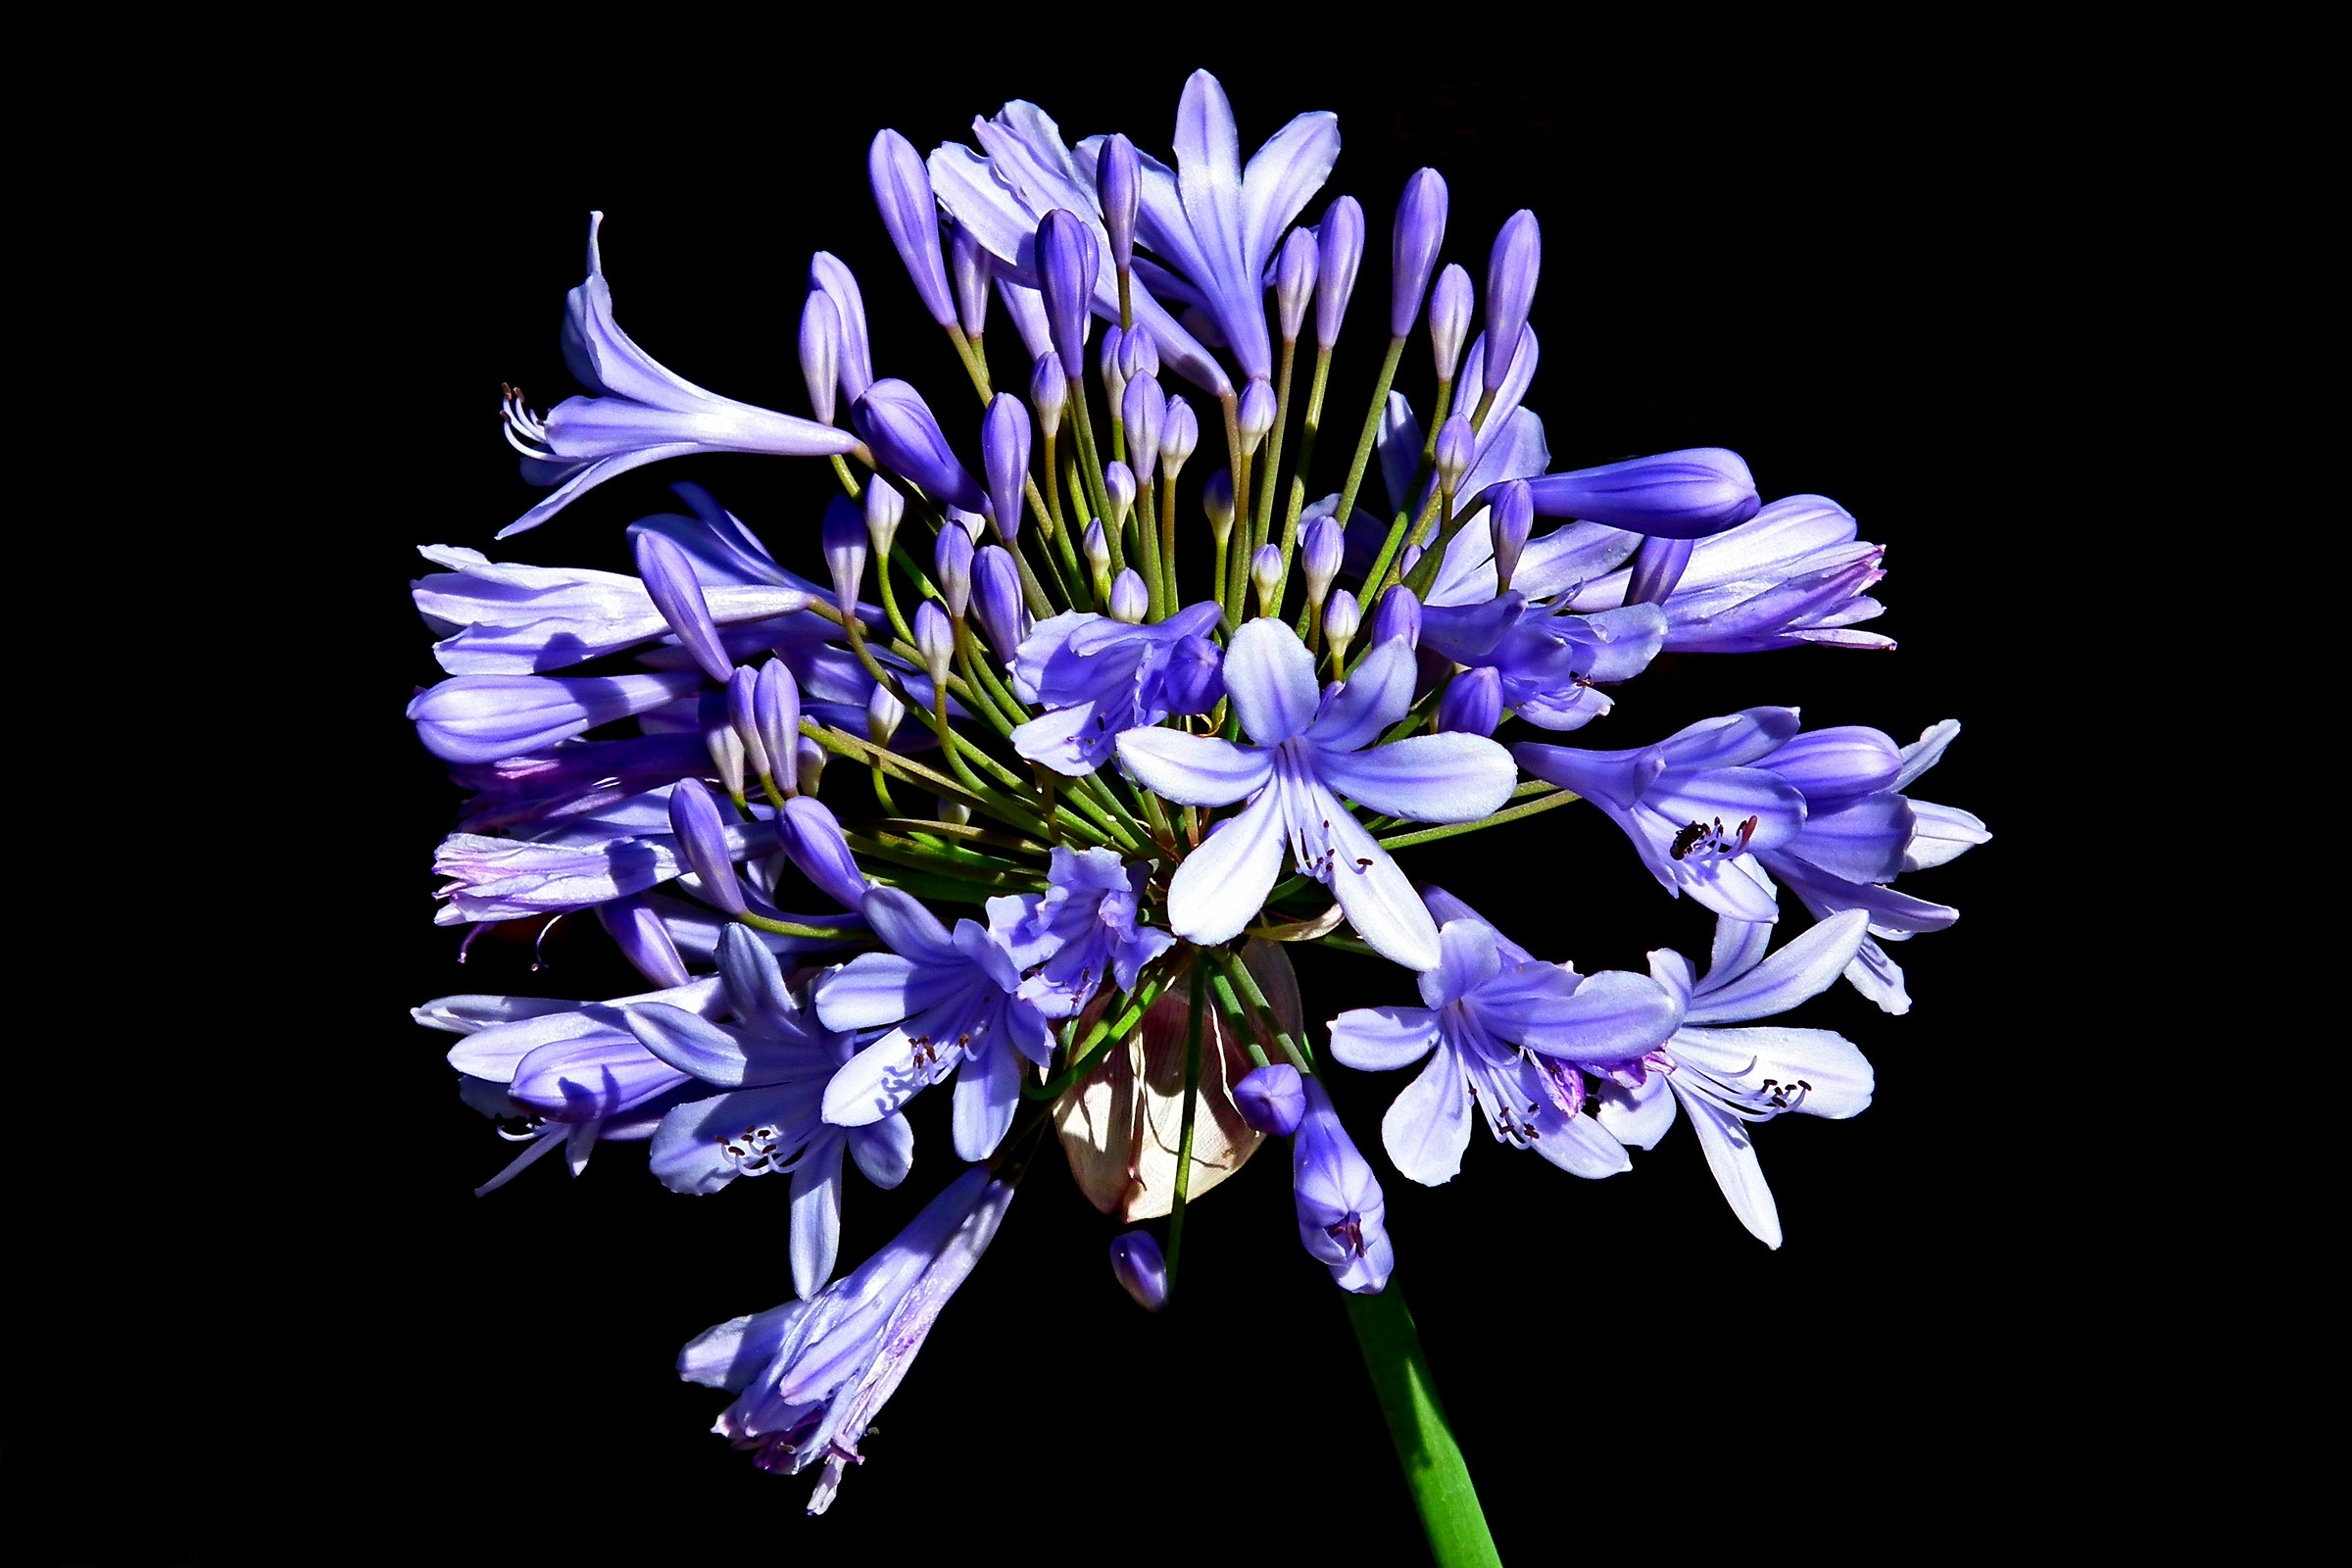 Agapanthus blu fiore dell'amore...